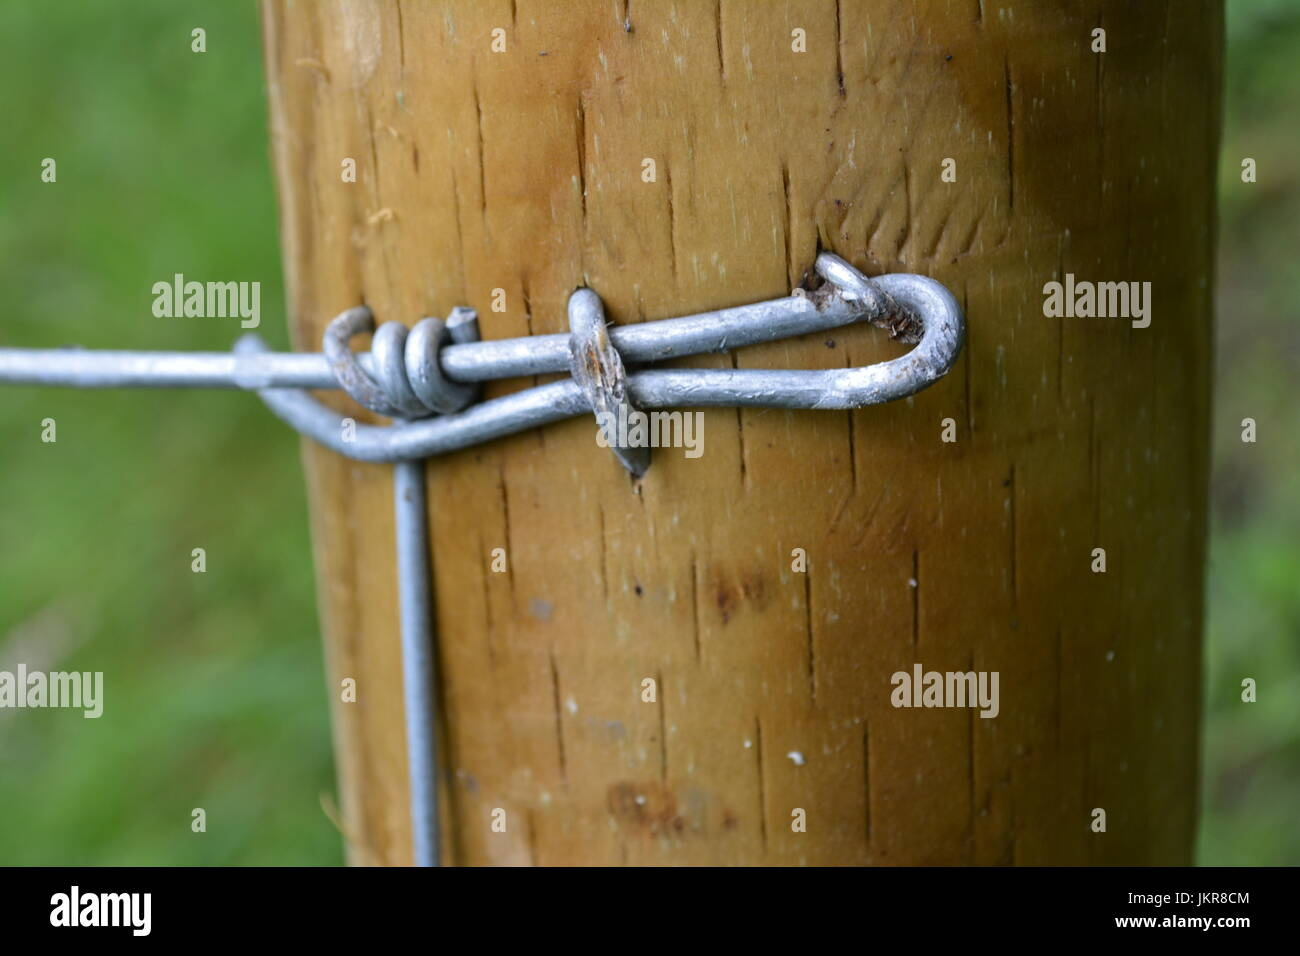 Close up of galvanised wire fence stapled to timber wood post upright re fencing fastening - Stock Image